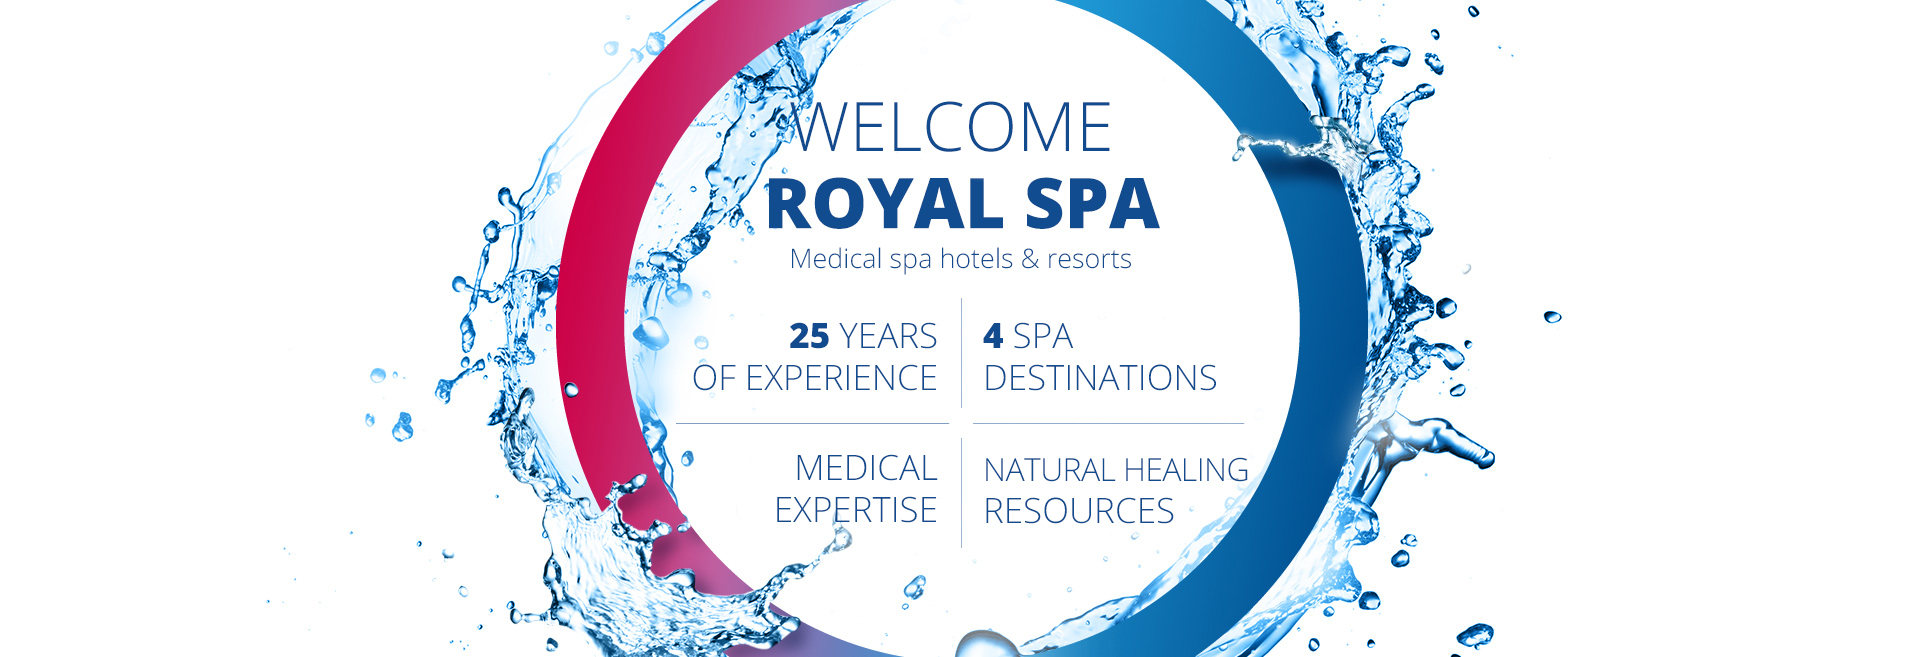 Welcome in ROAL SPA - partner for your harmony and health